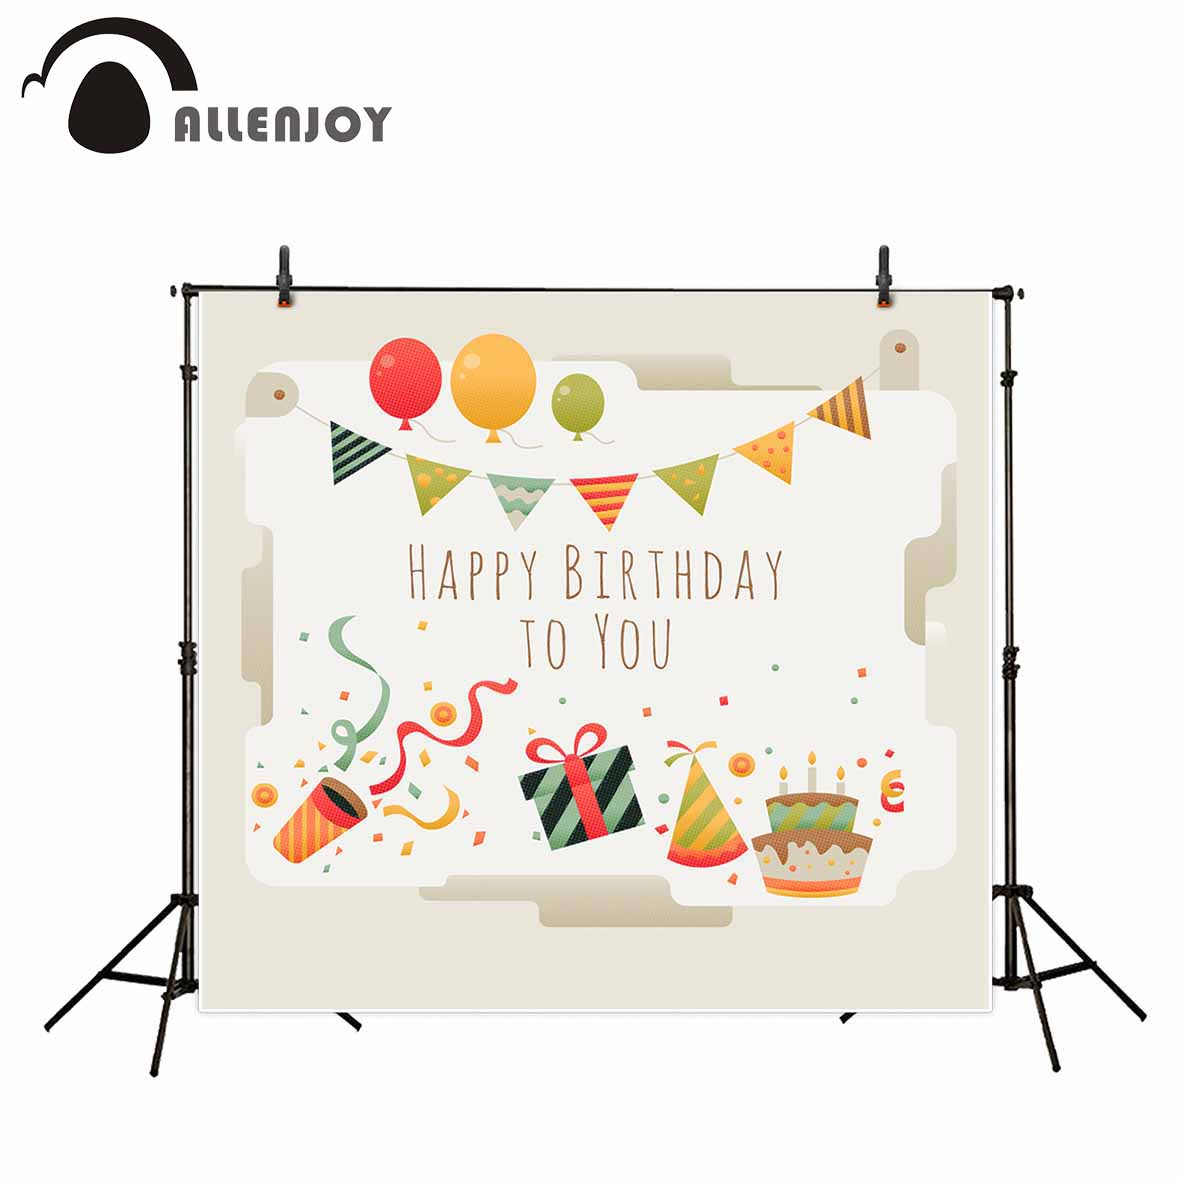 Allenjoy photography backdrop Balloon Bunny Salute Birthday Child new background photocall customize photo floral backdrop